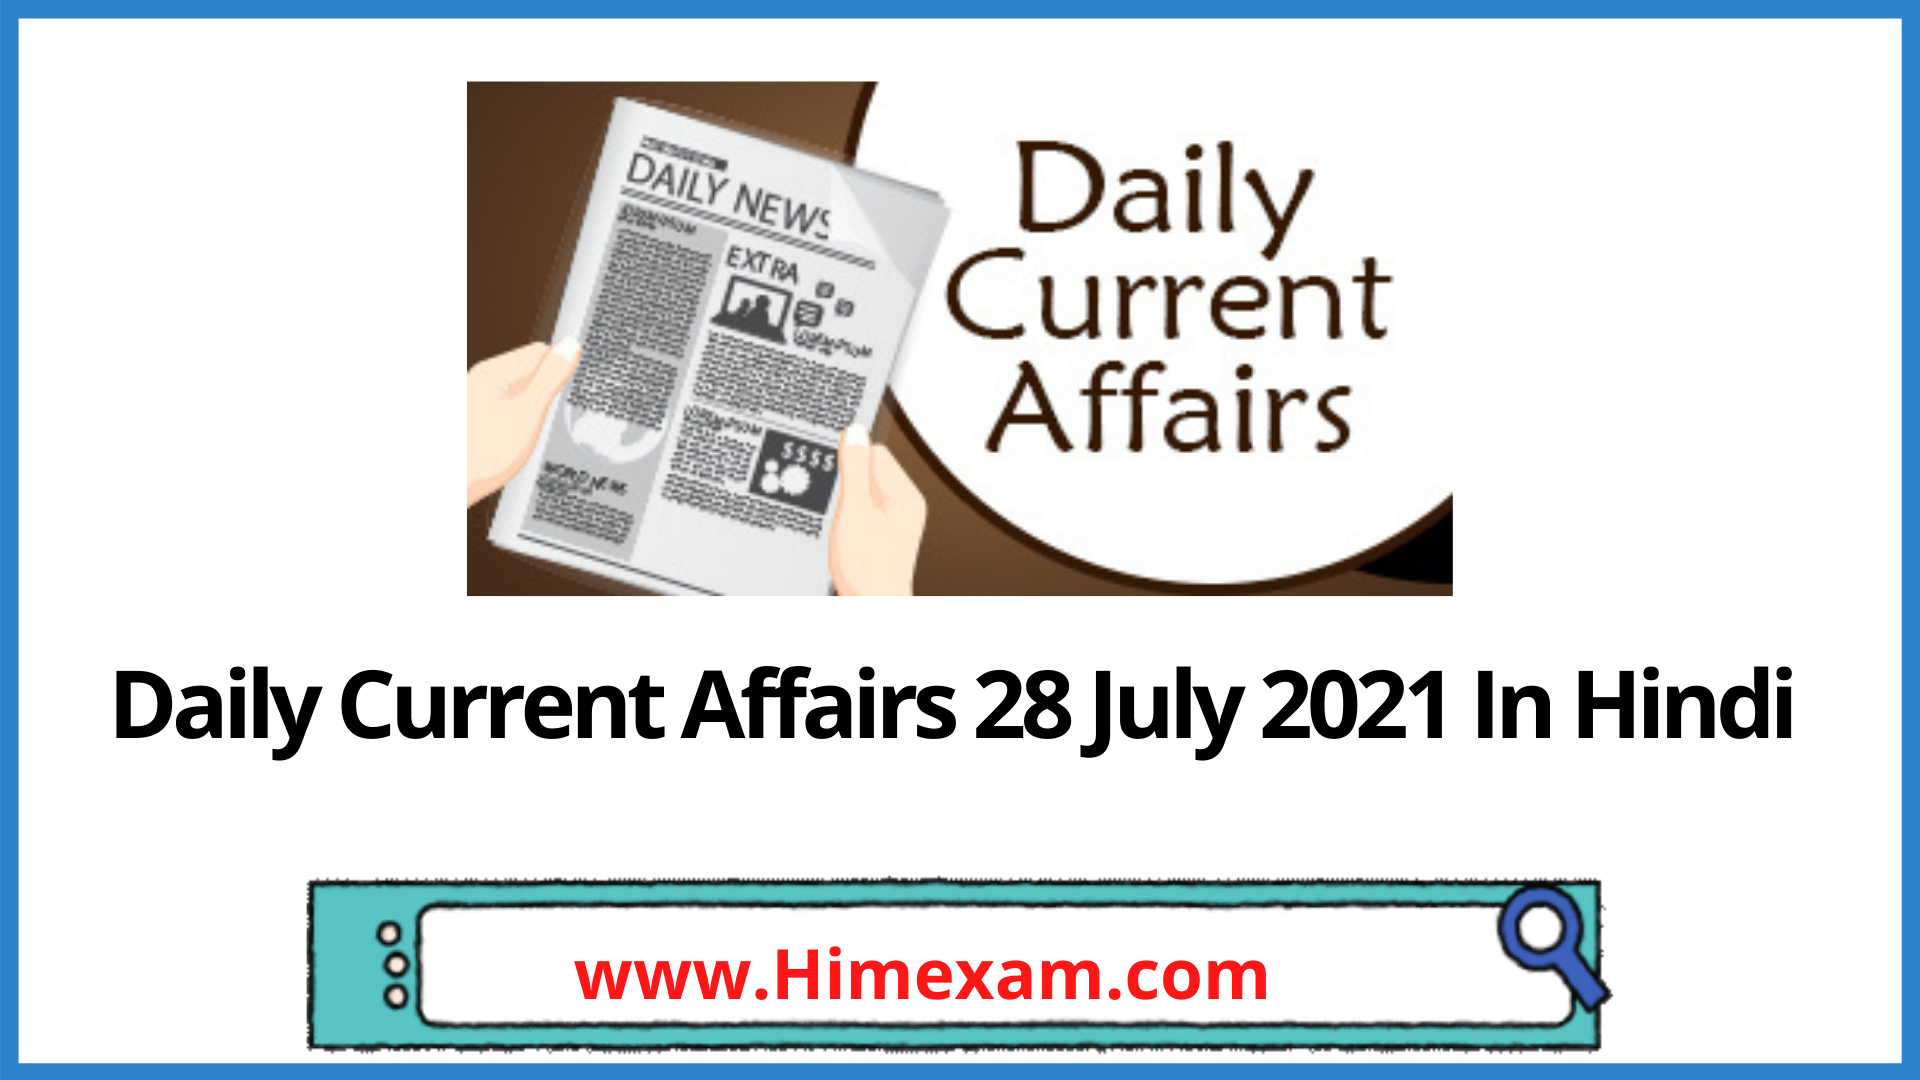 Daily Current Affairs 28 July 2021 In Hindi